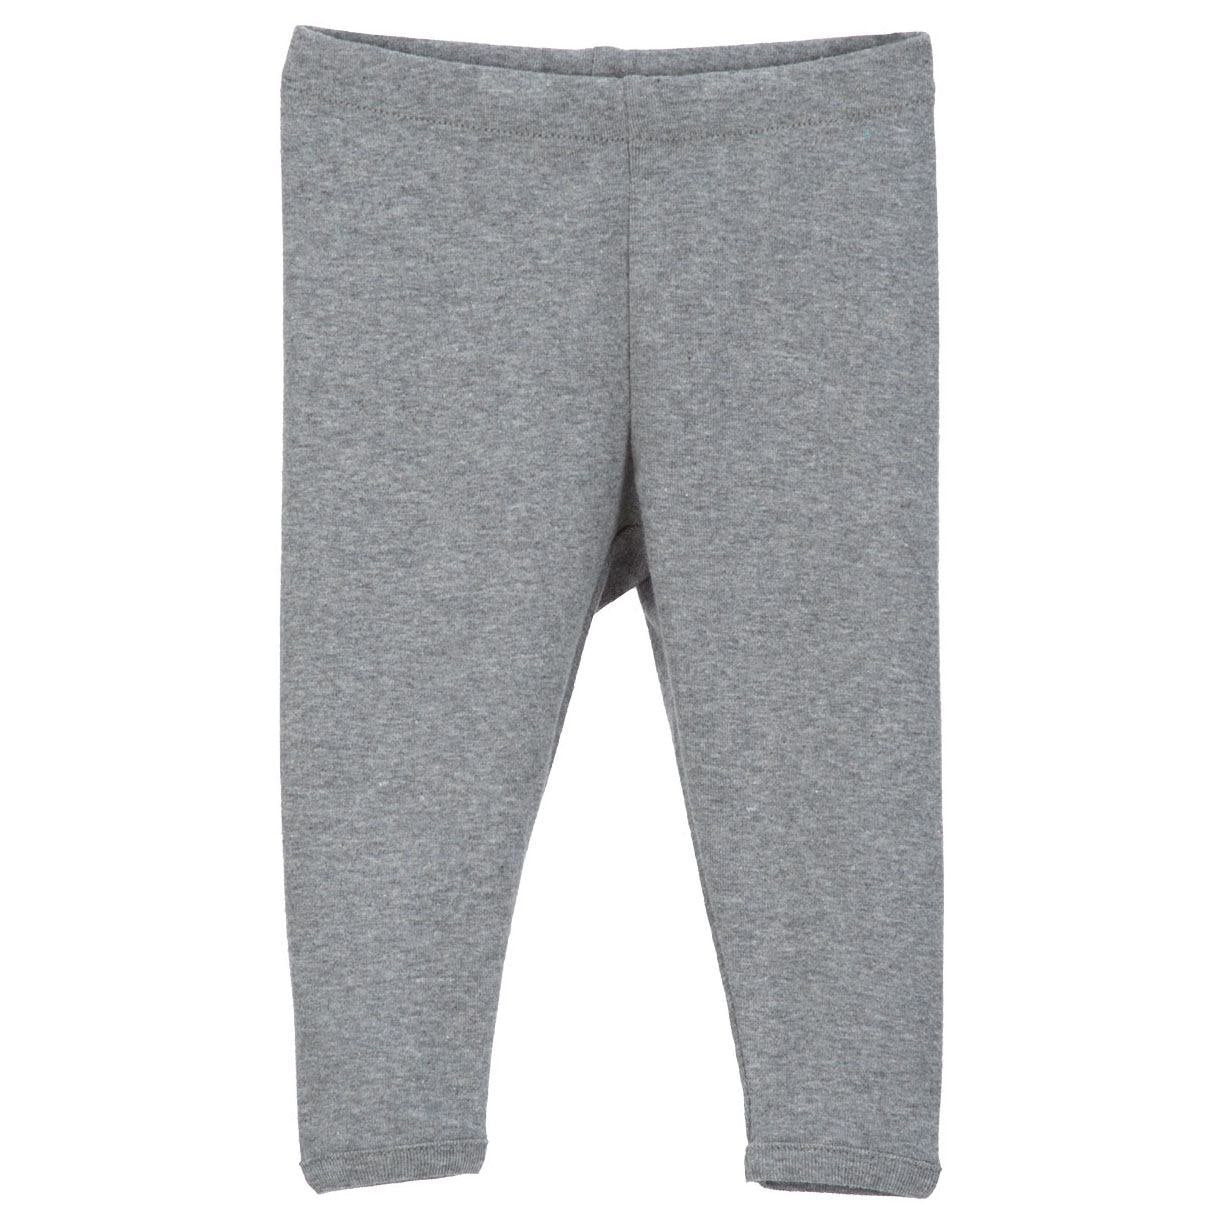 Image of   Serendipity bukser / leggings - Grey